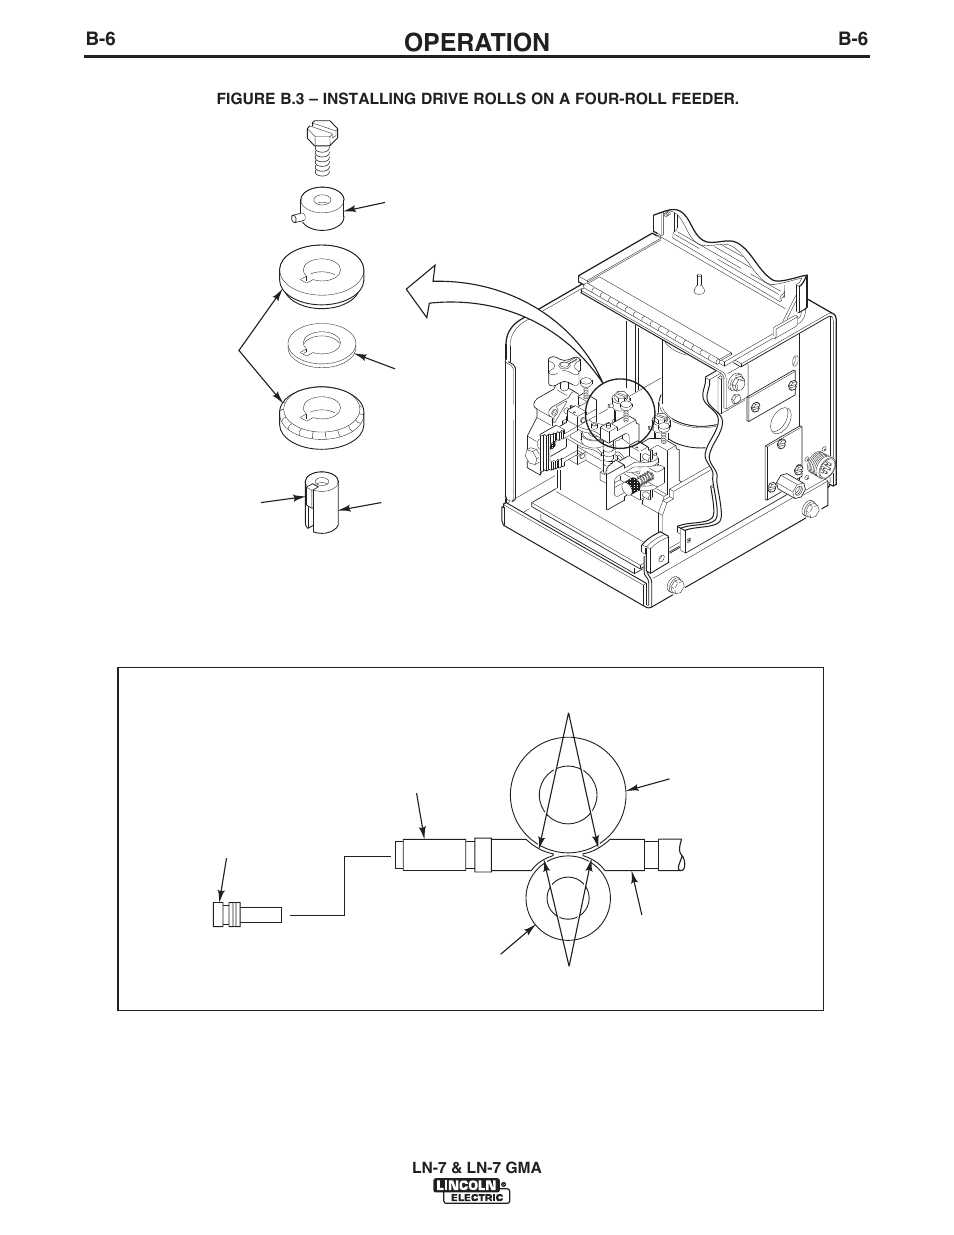 medium resolution of operation lincoln electric im351 ln 7 gma wire feeder user manual page 36 62